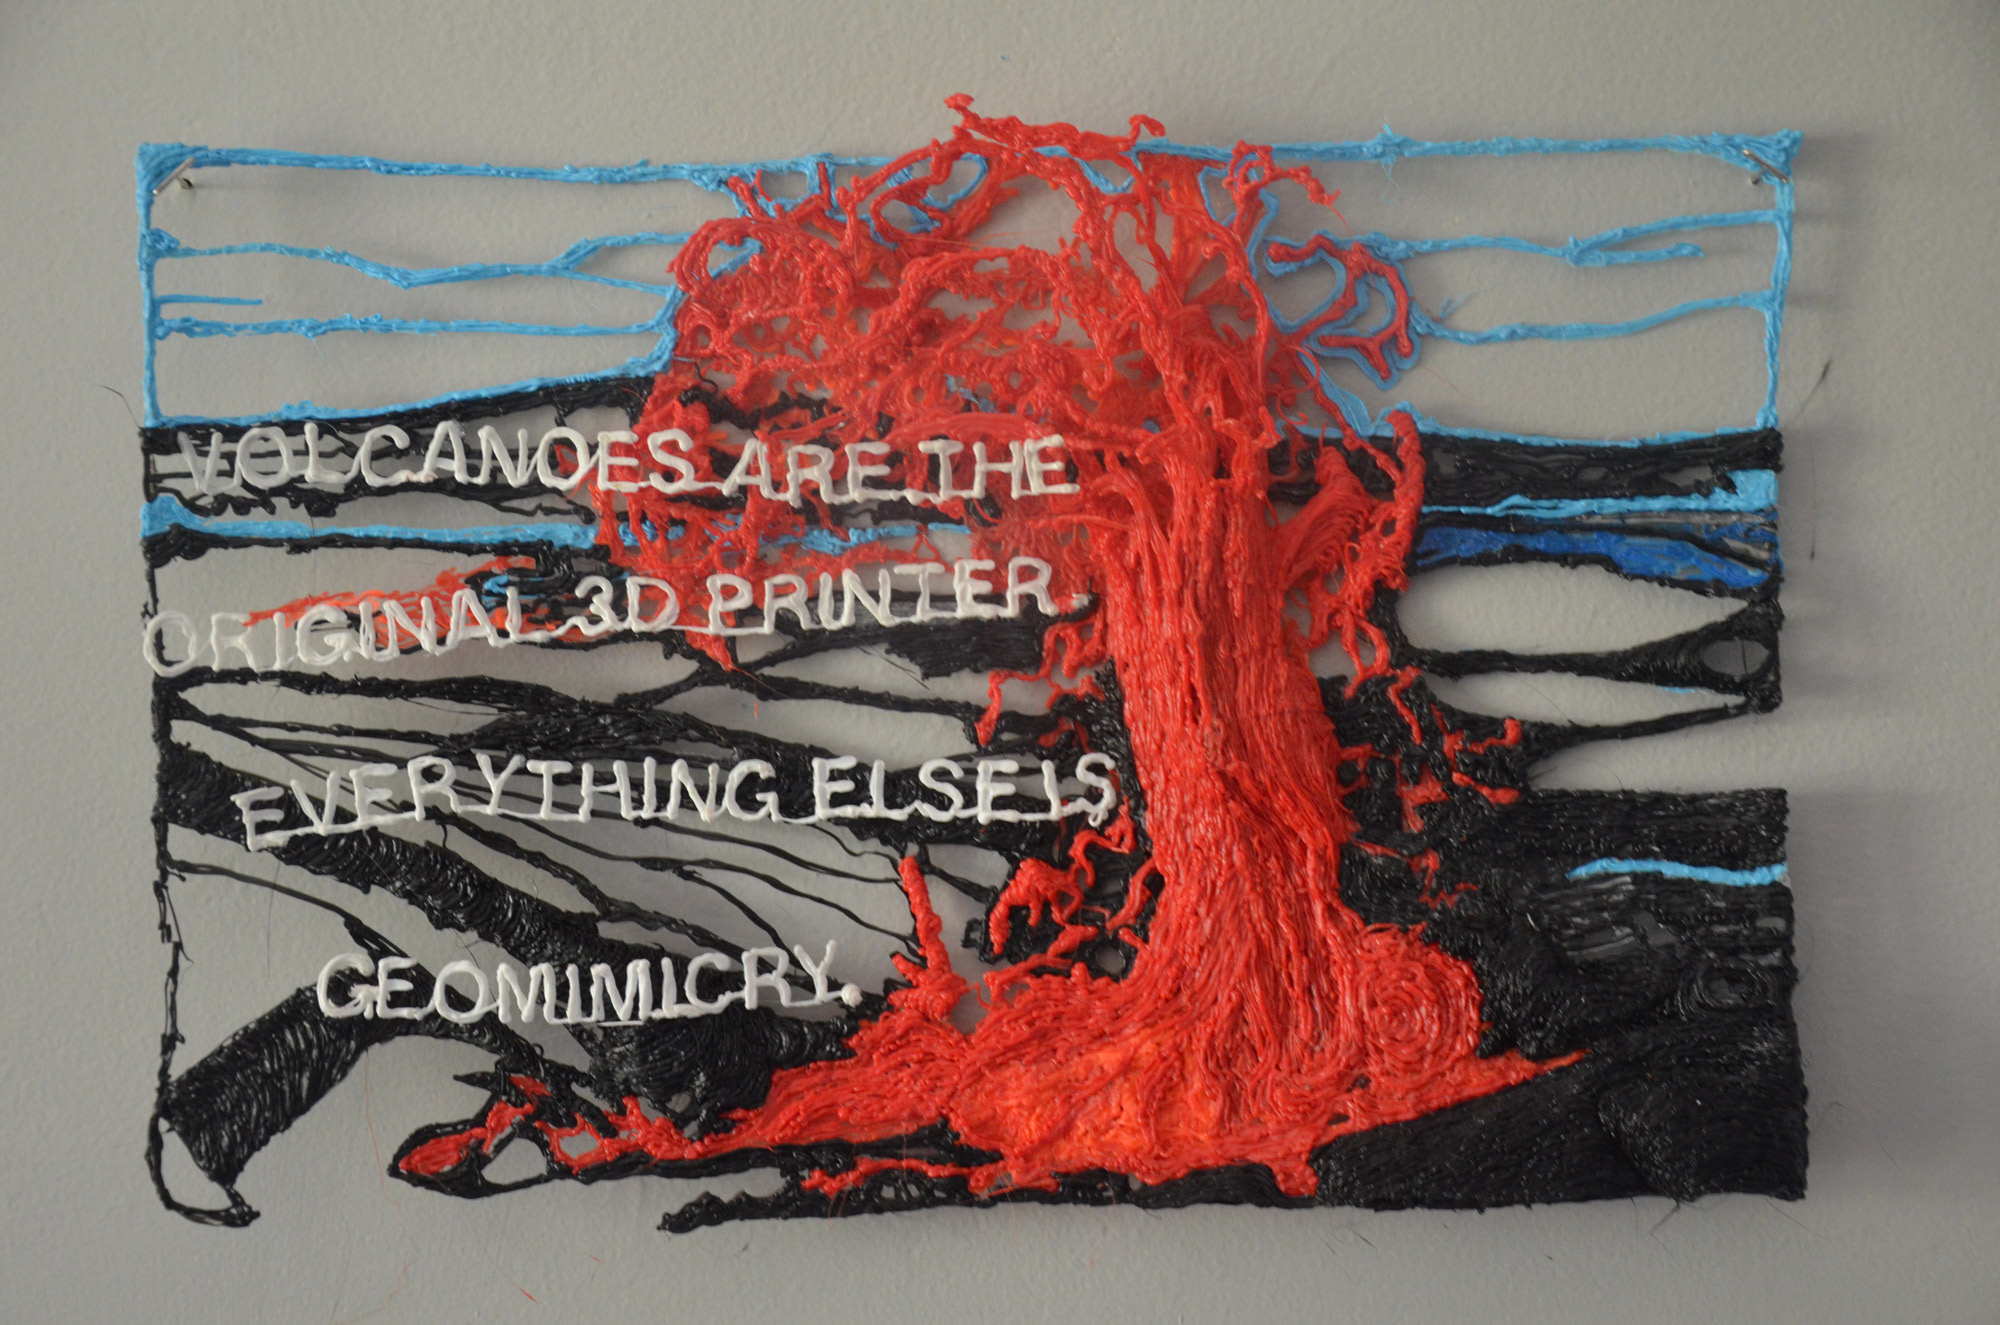 VOLCANOES-ARE-THE-ORIGINAL-3D-PRINTER-EVERYTHING-ELSE-IS-GEOMIMICRY.jpg